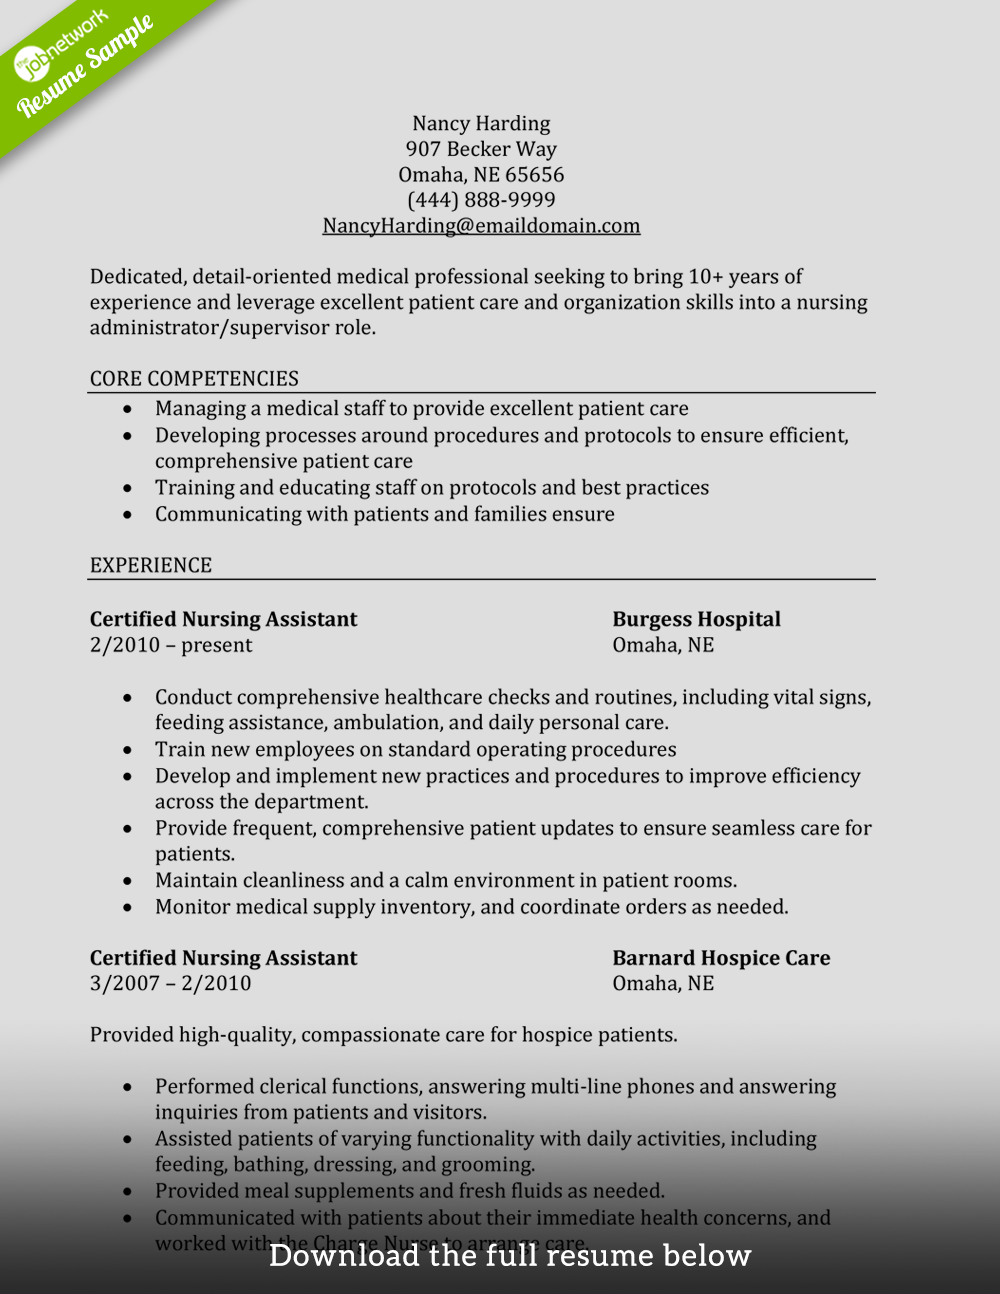 nursing aide resume nurse aide resume samples jobhero sample resume and cover letters for nurses samplenursingresumecover